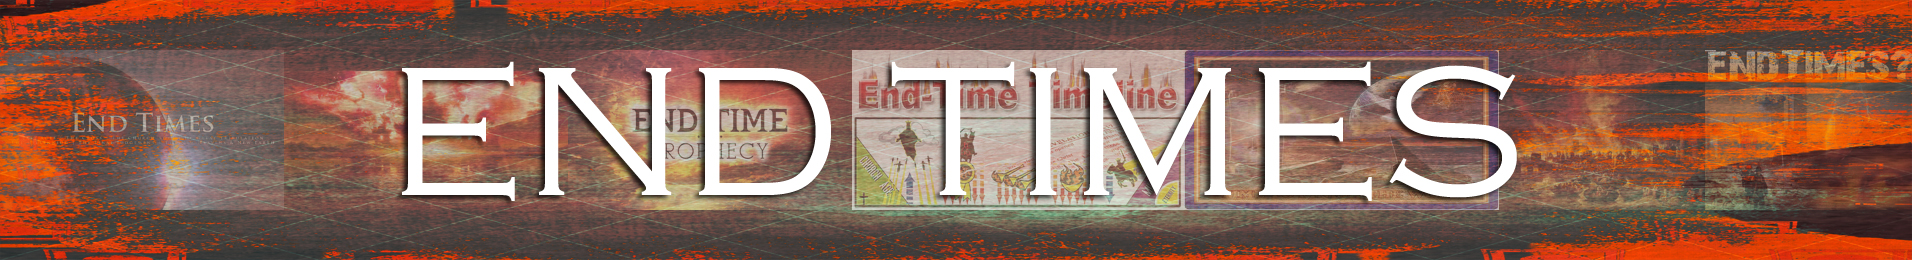 End Times Banner